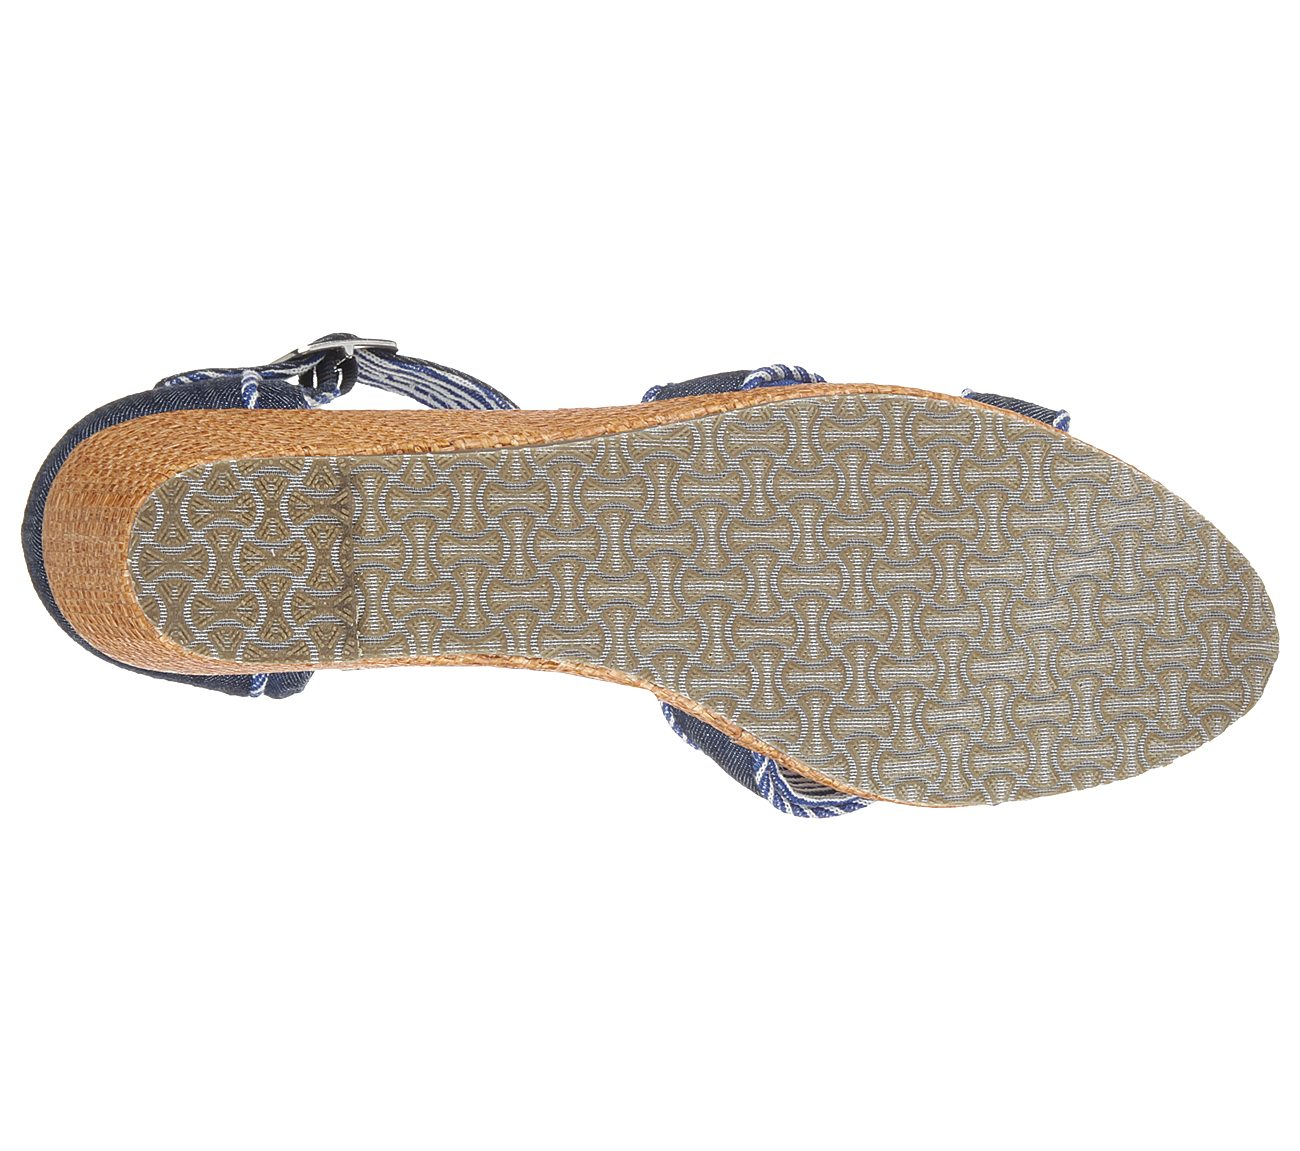 dec210613f42 Buy SKECHERS Monarchs - Lil Sweethearts Comfort Sandals Shoes only ...